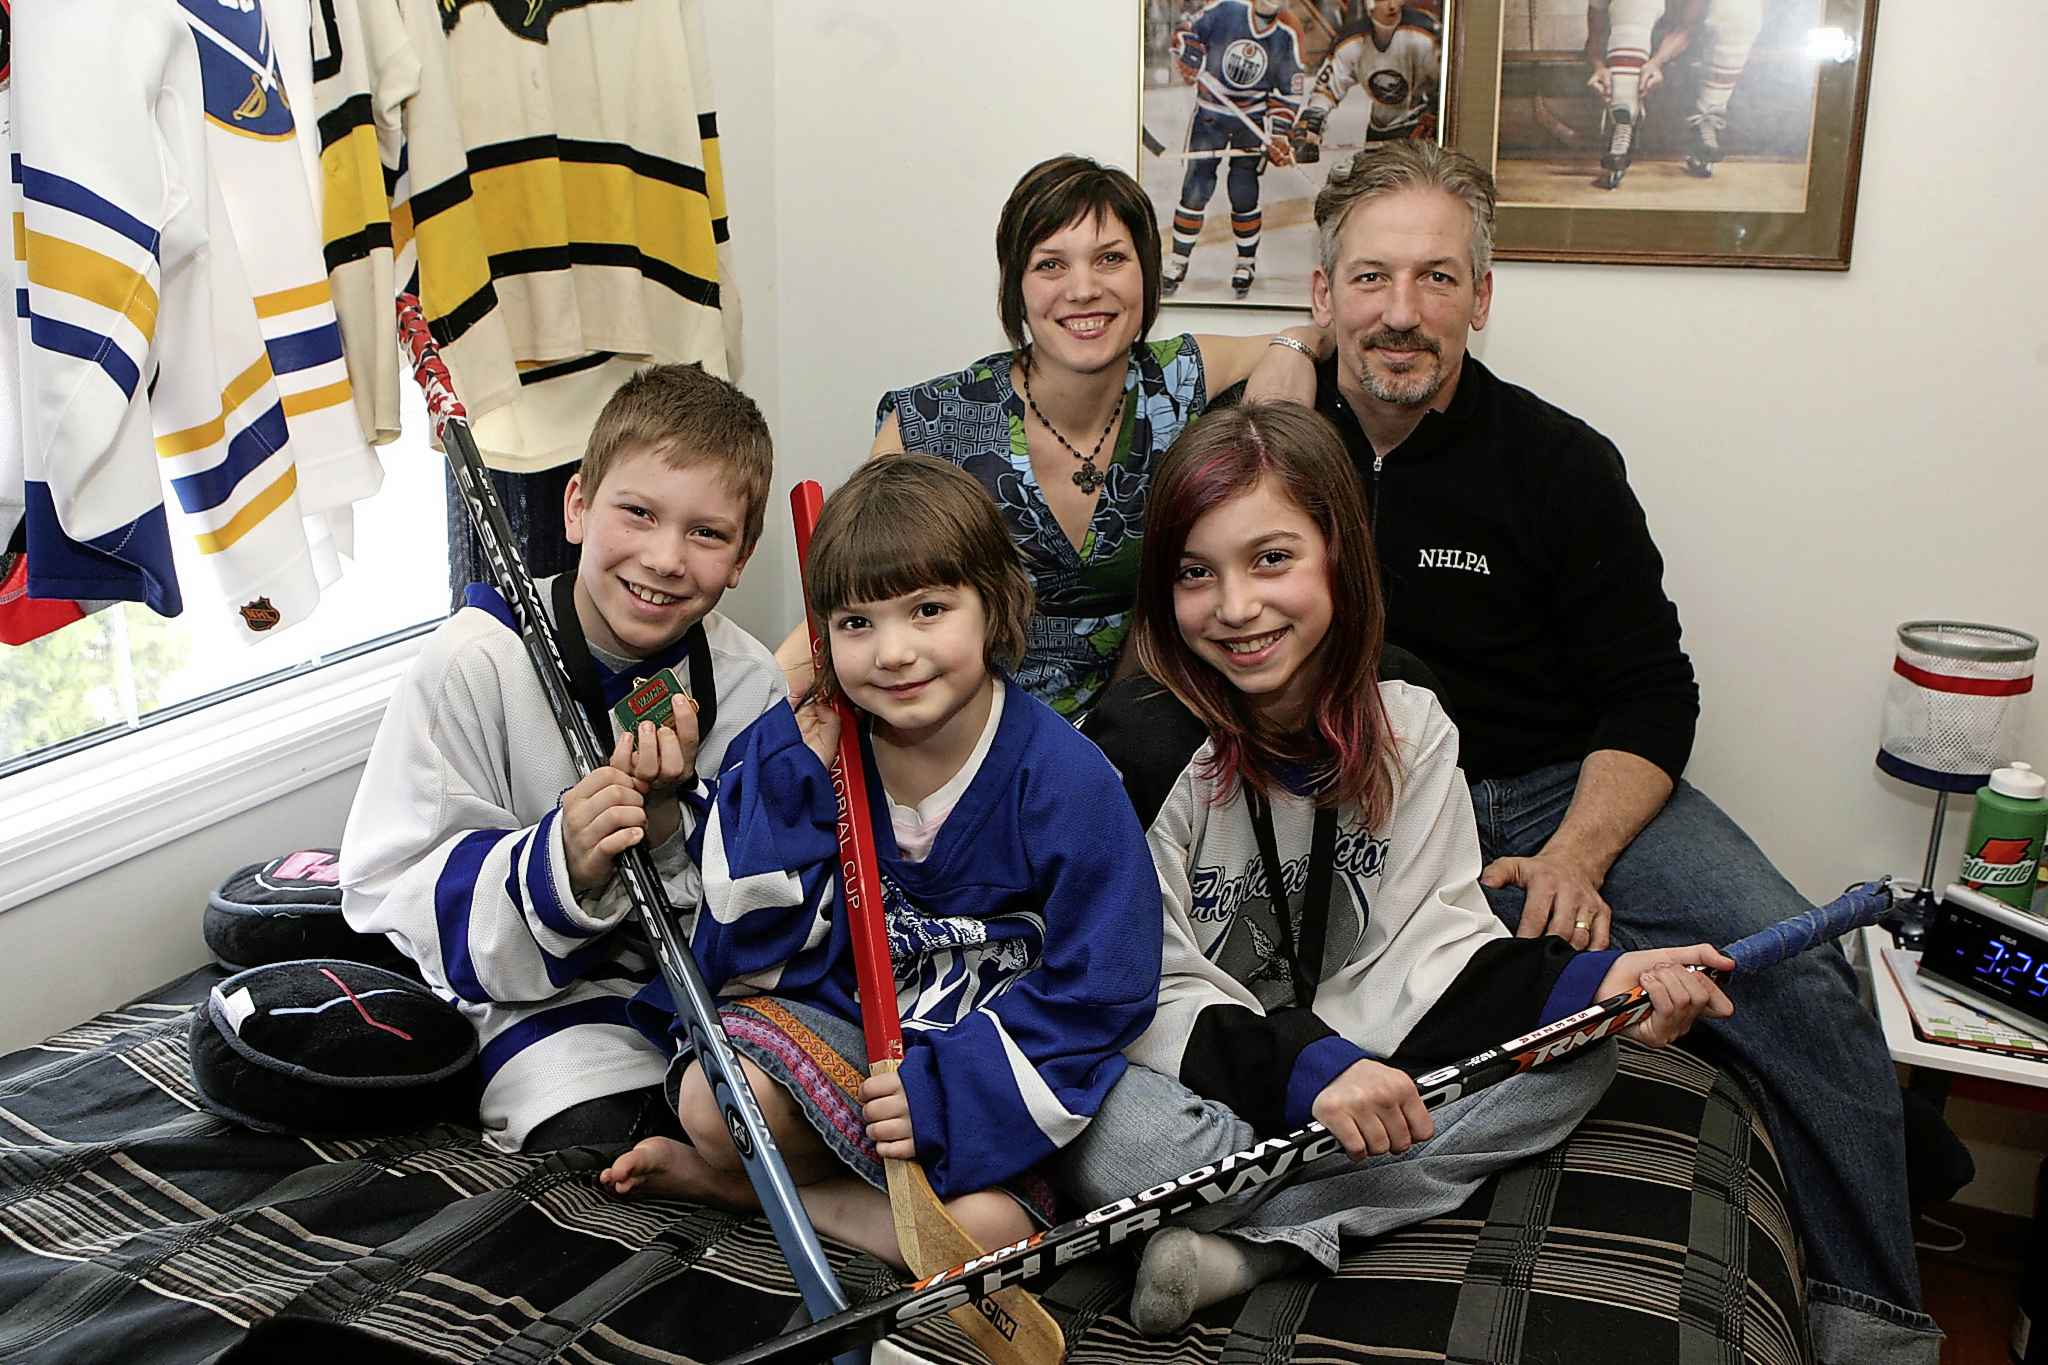 Aimee at 4-years-old, (centre), with brother Nolan, 8, (left) and sister Madison, 11, with mom Carrie and father Stephen. (Ruth Bonneville / Winnipeg Free Press files)